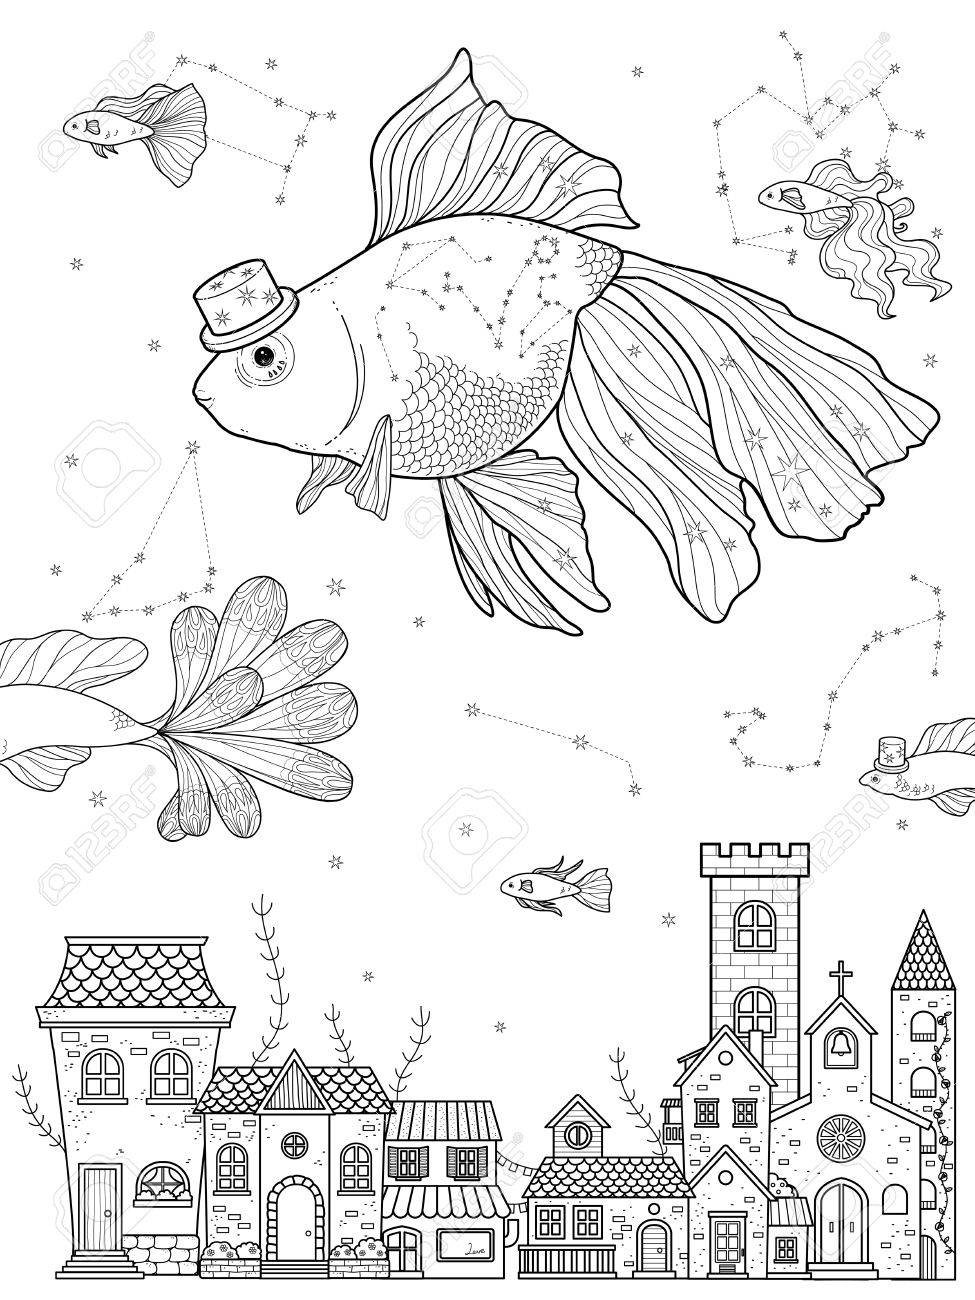 Fancy Goldfish Float Upon Starry Night - Adult Coloring Page Royalty ...